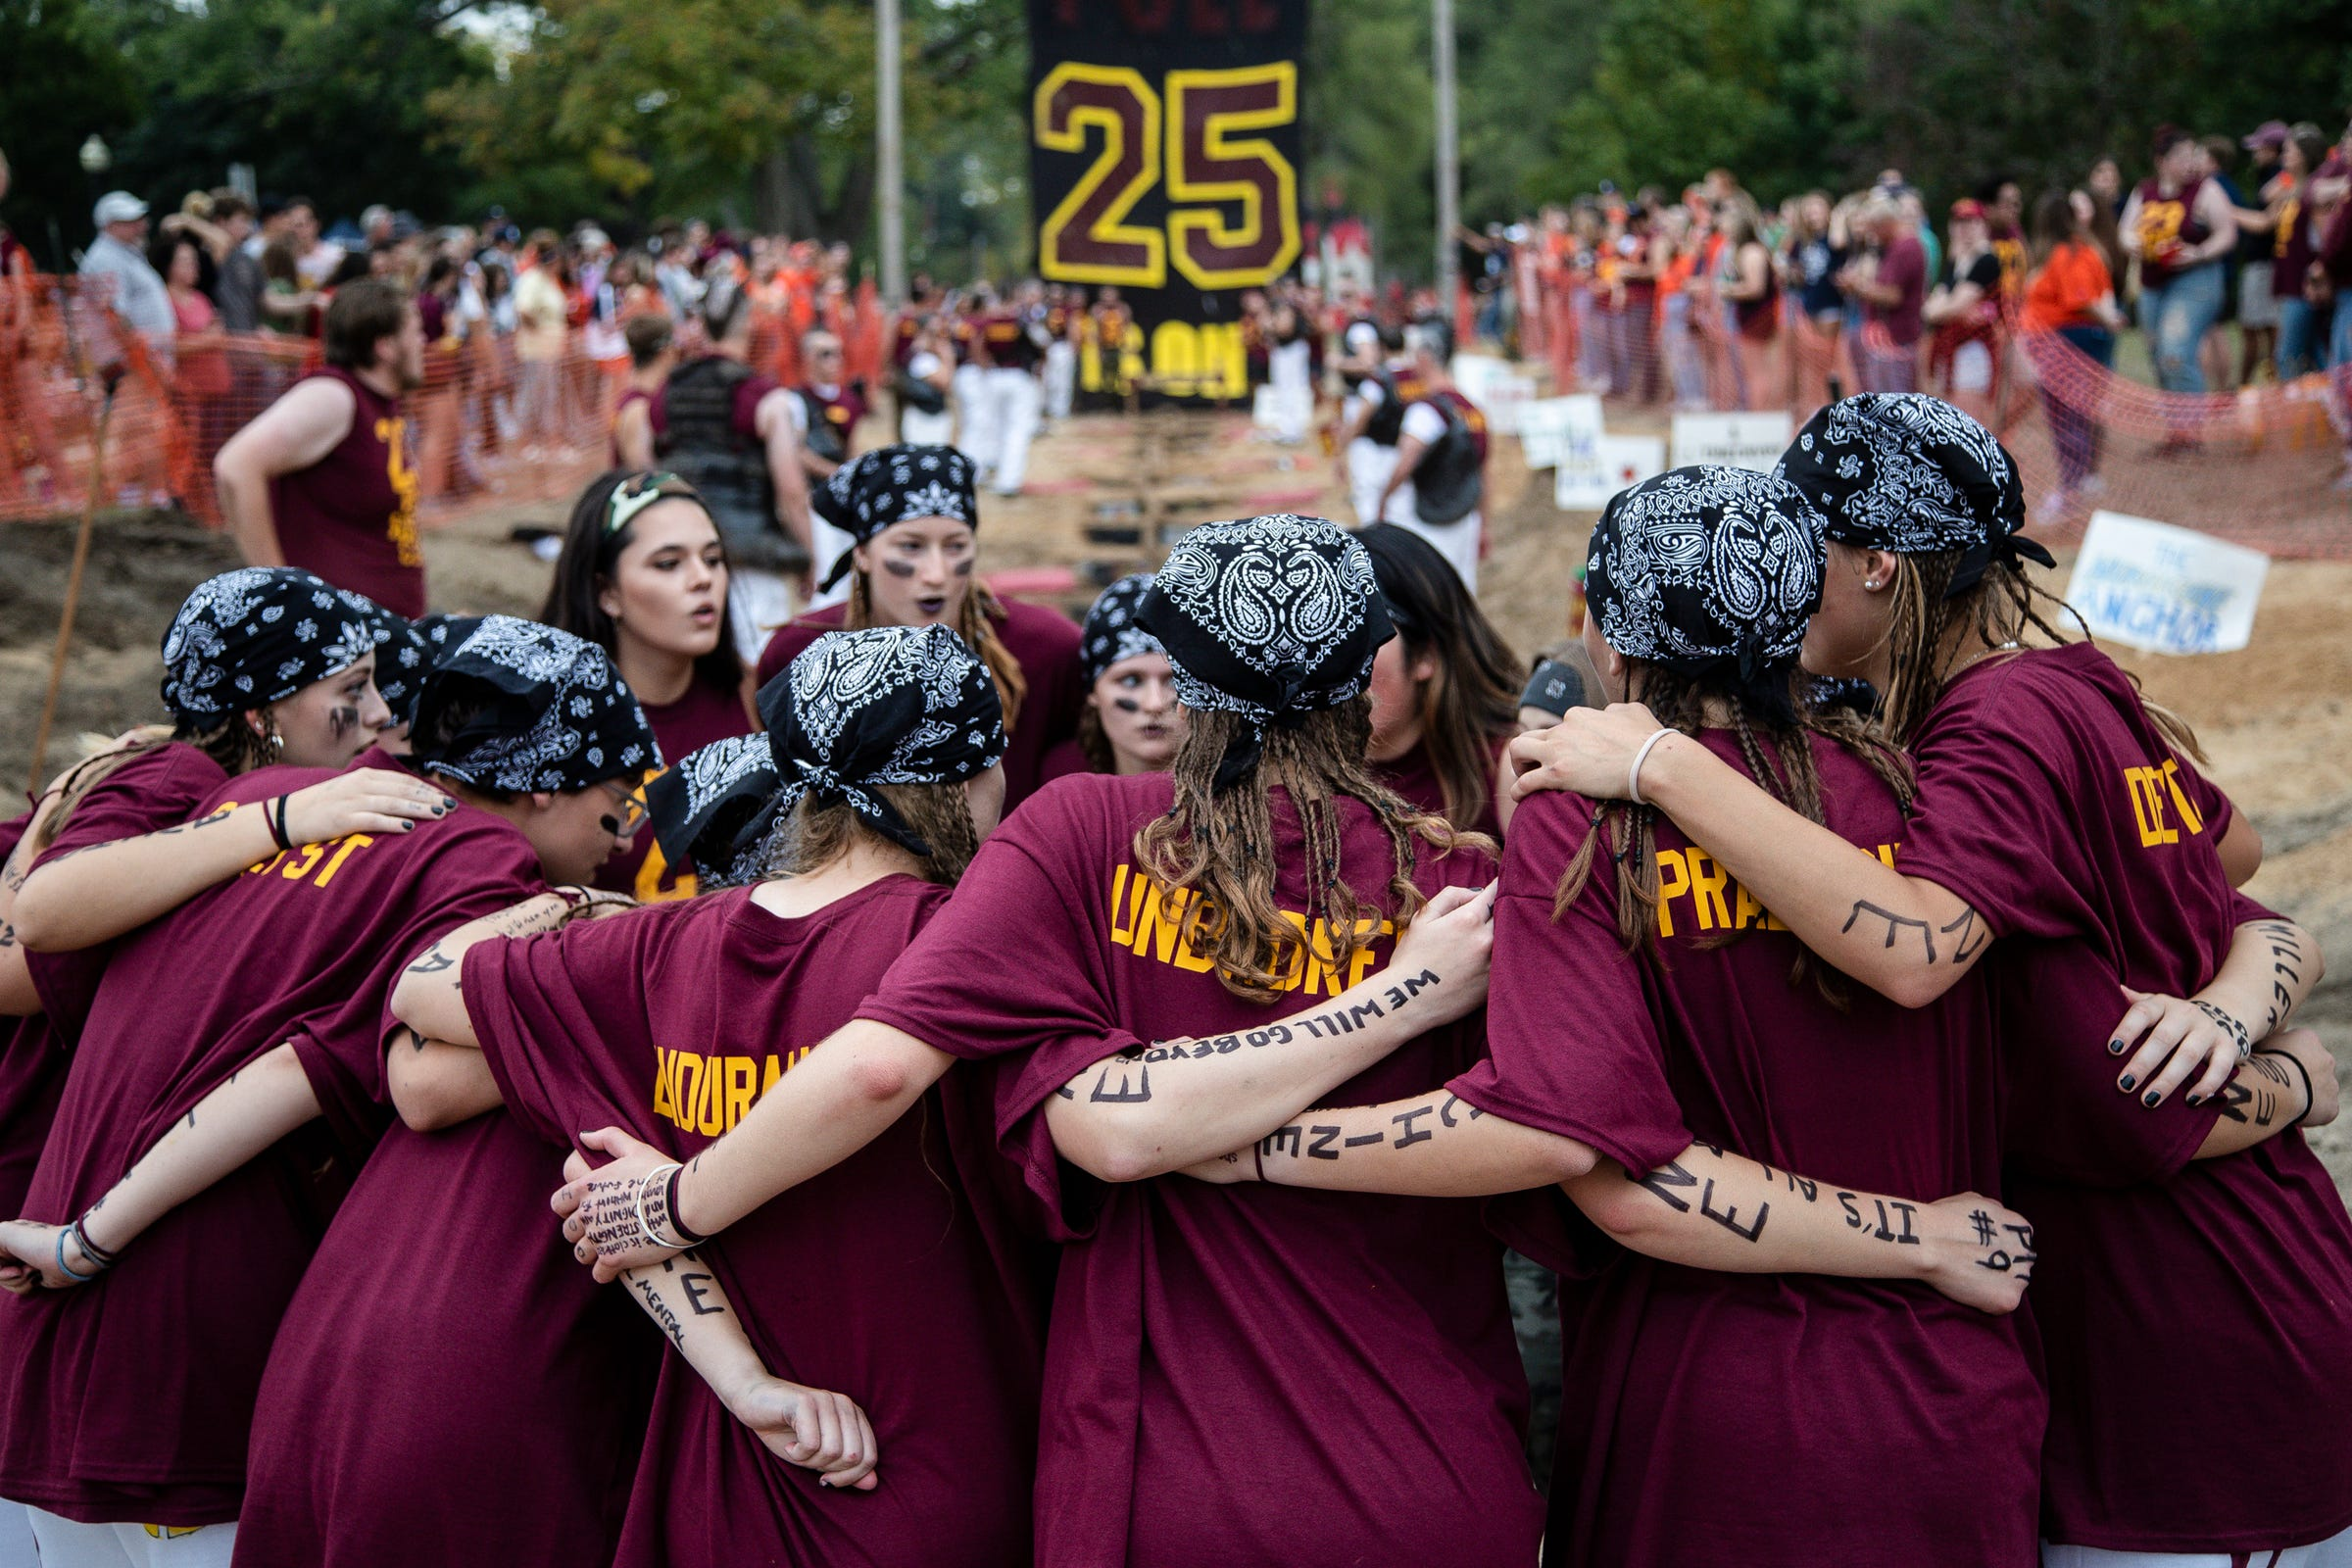 Odd-year morale boosters huddle before The Pull, an annual tug-of-war between the freshman and sophomore classes at Hope College in Holland on Saturday, Oct. 2, 2021.